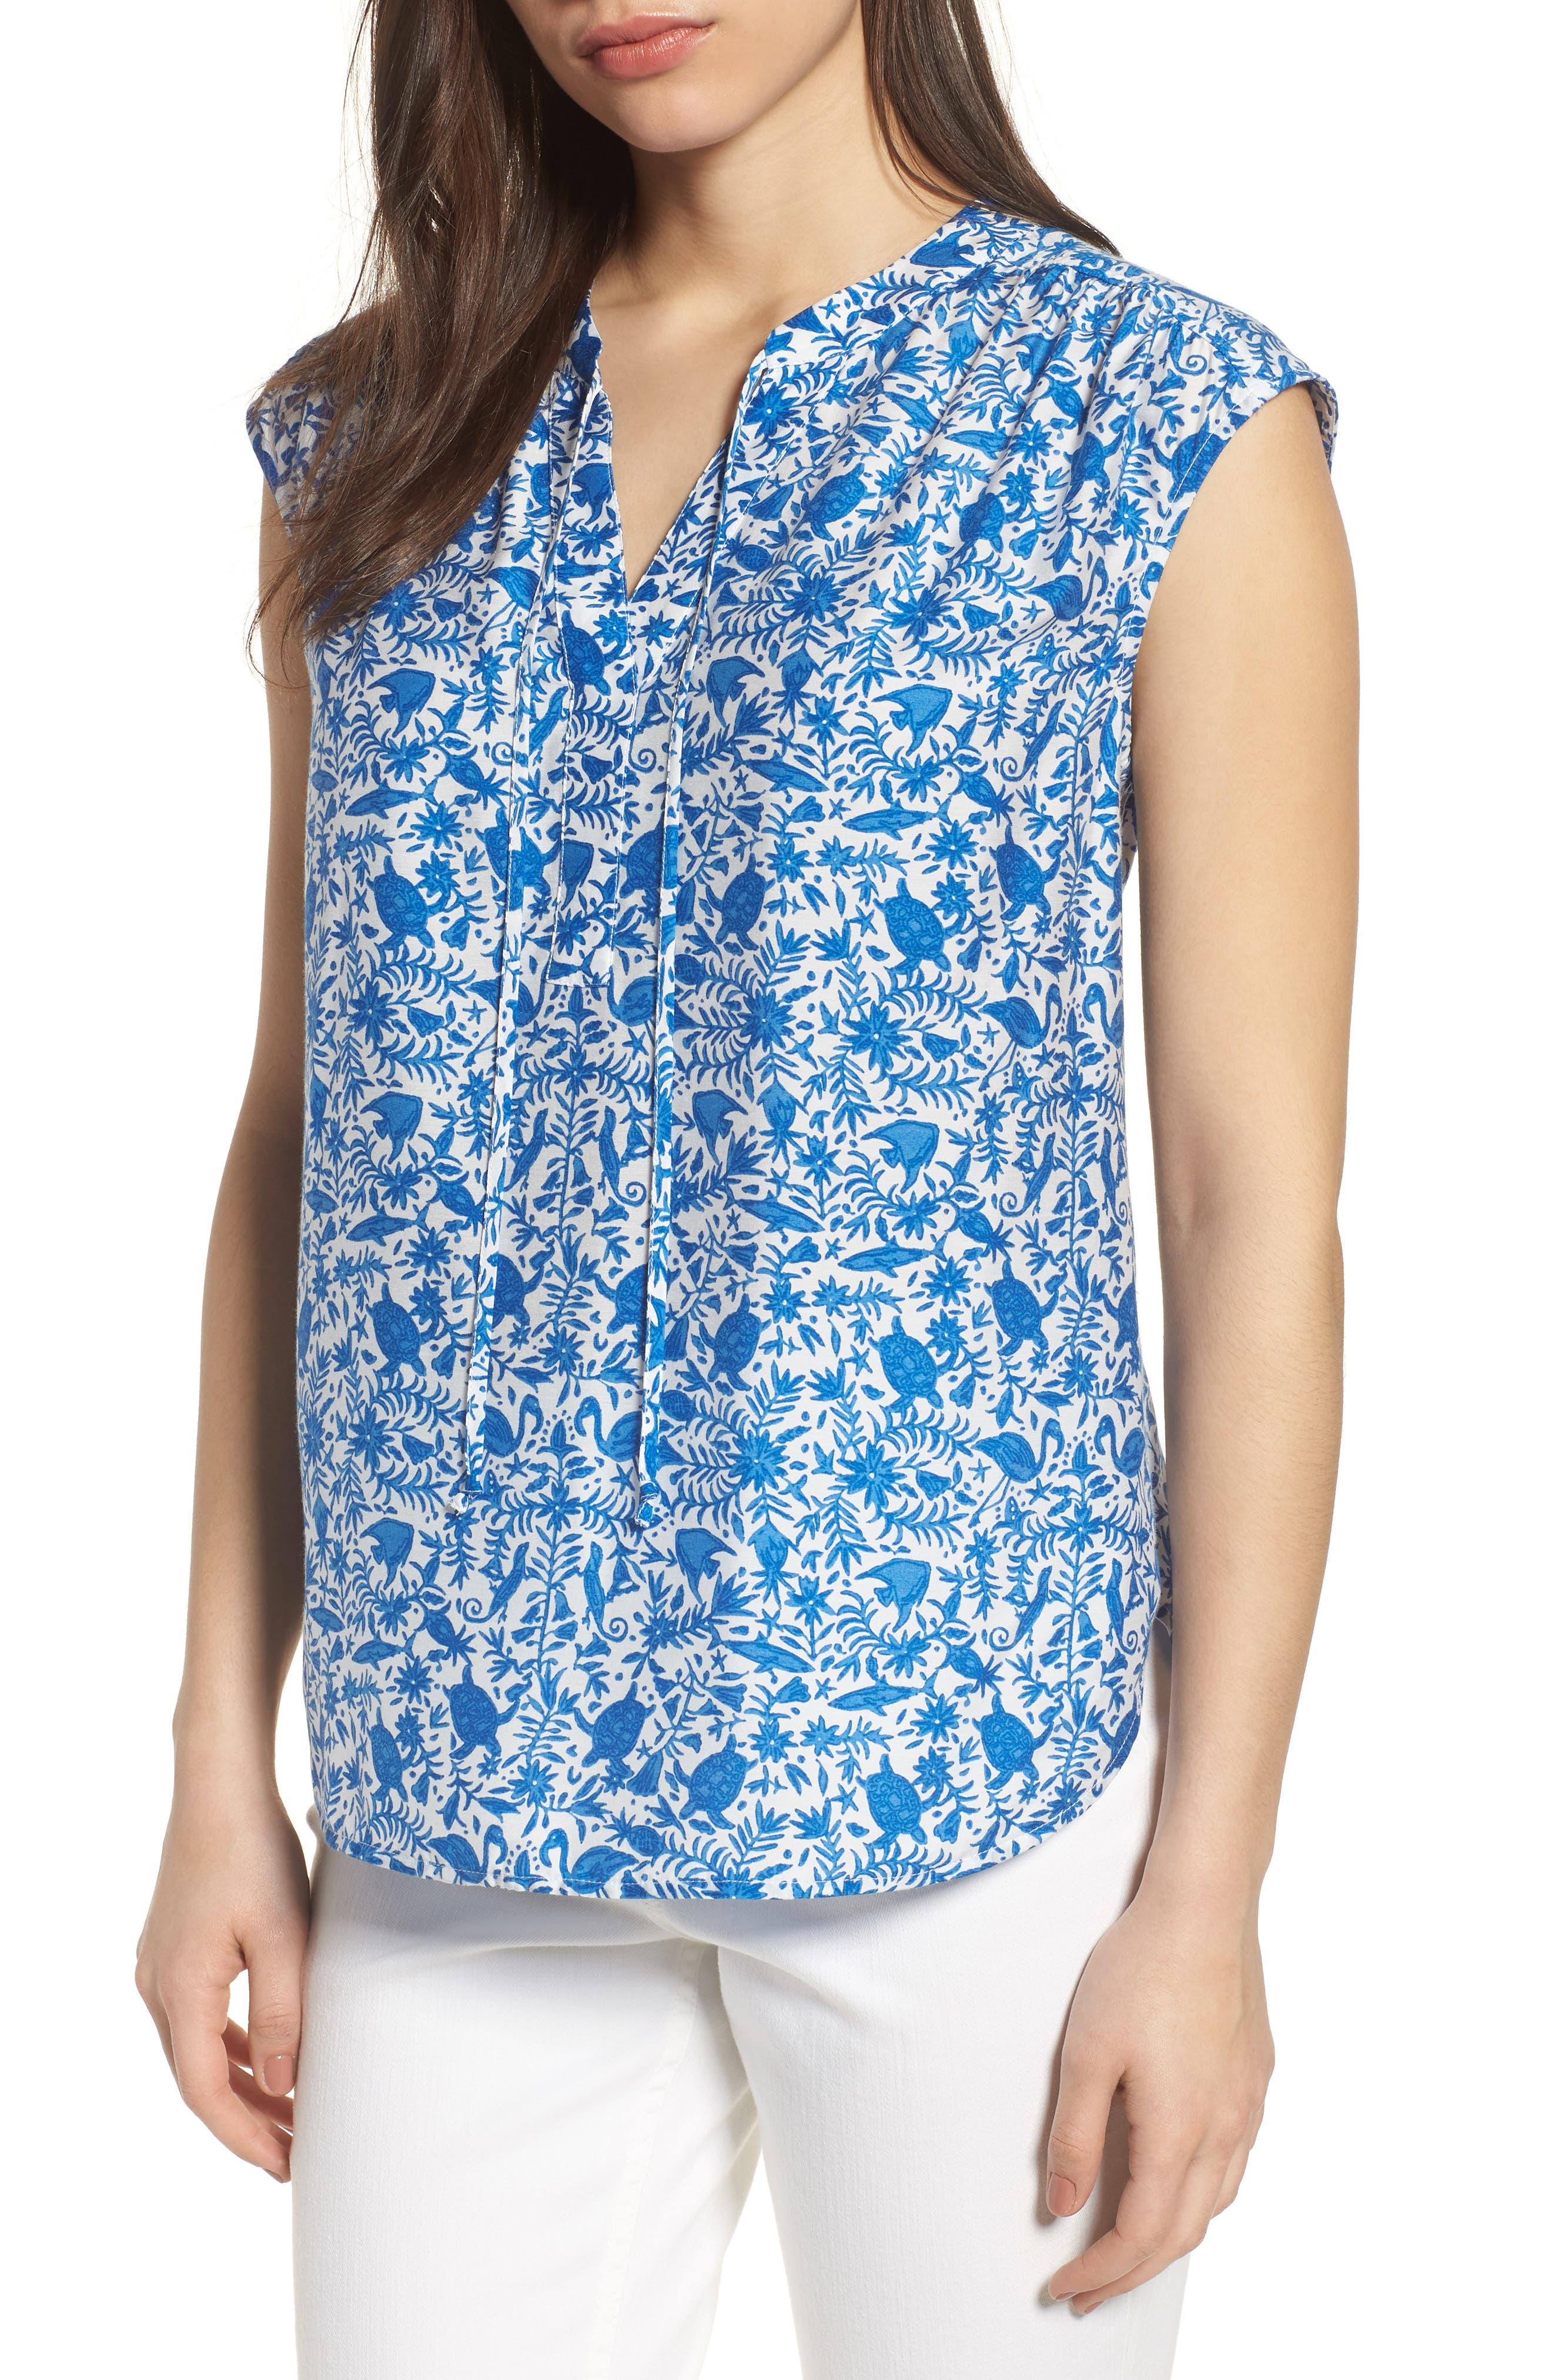 Bahamas Otomi Sleeveless Cotton Top,                             Main thumbnail 1, color,                             413